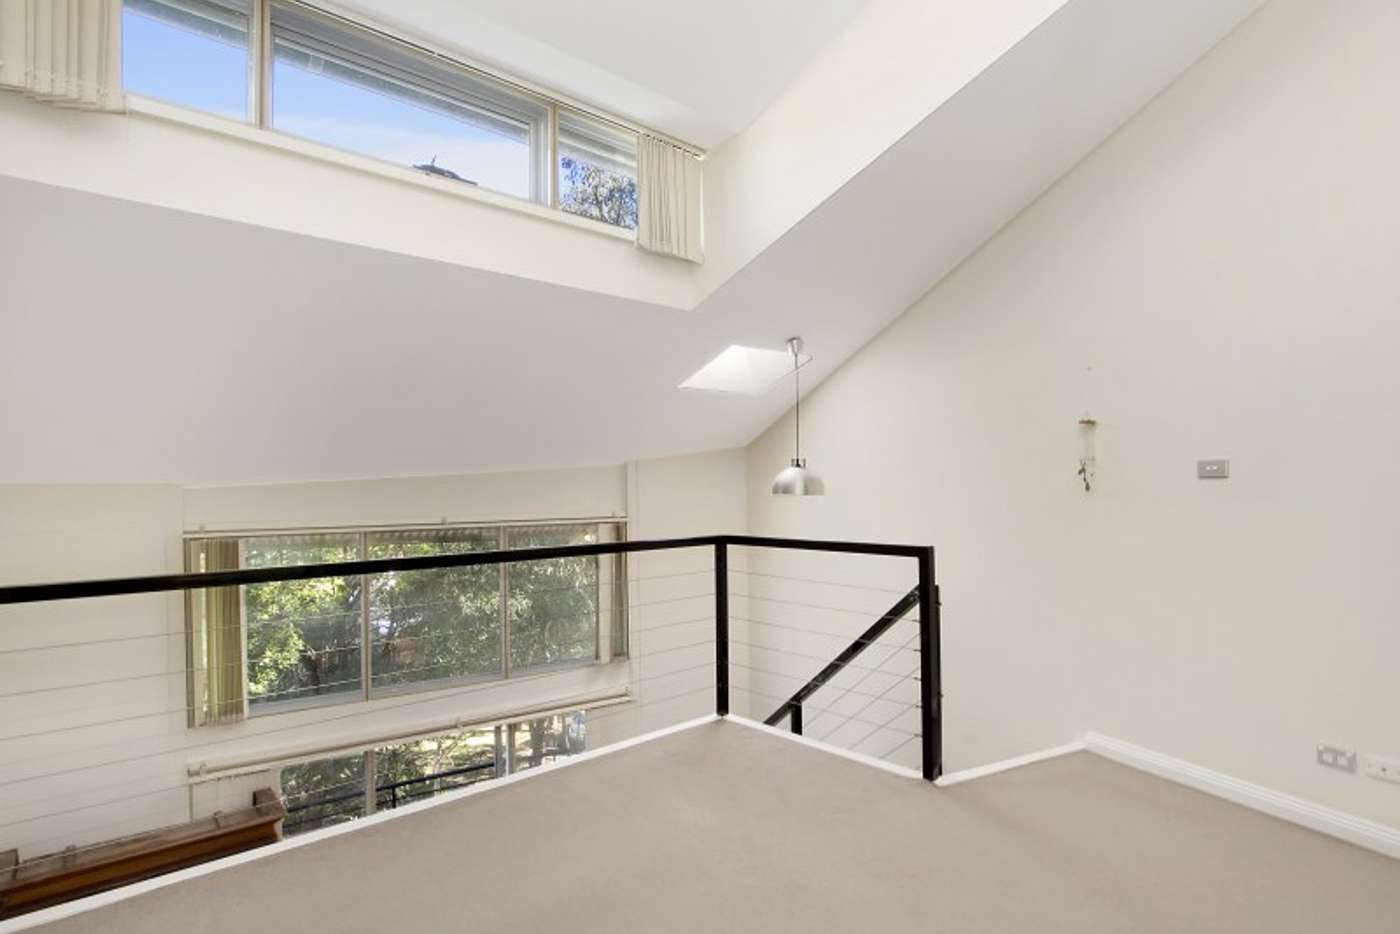 Main view of Homely apartment listing, 19/480 King Street, Newtown NSW 2042